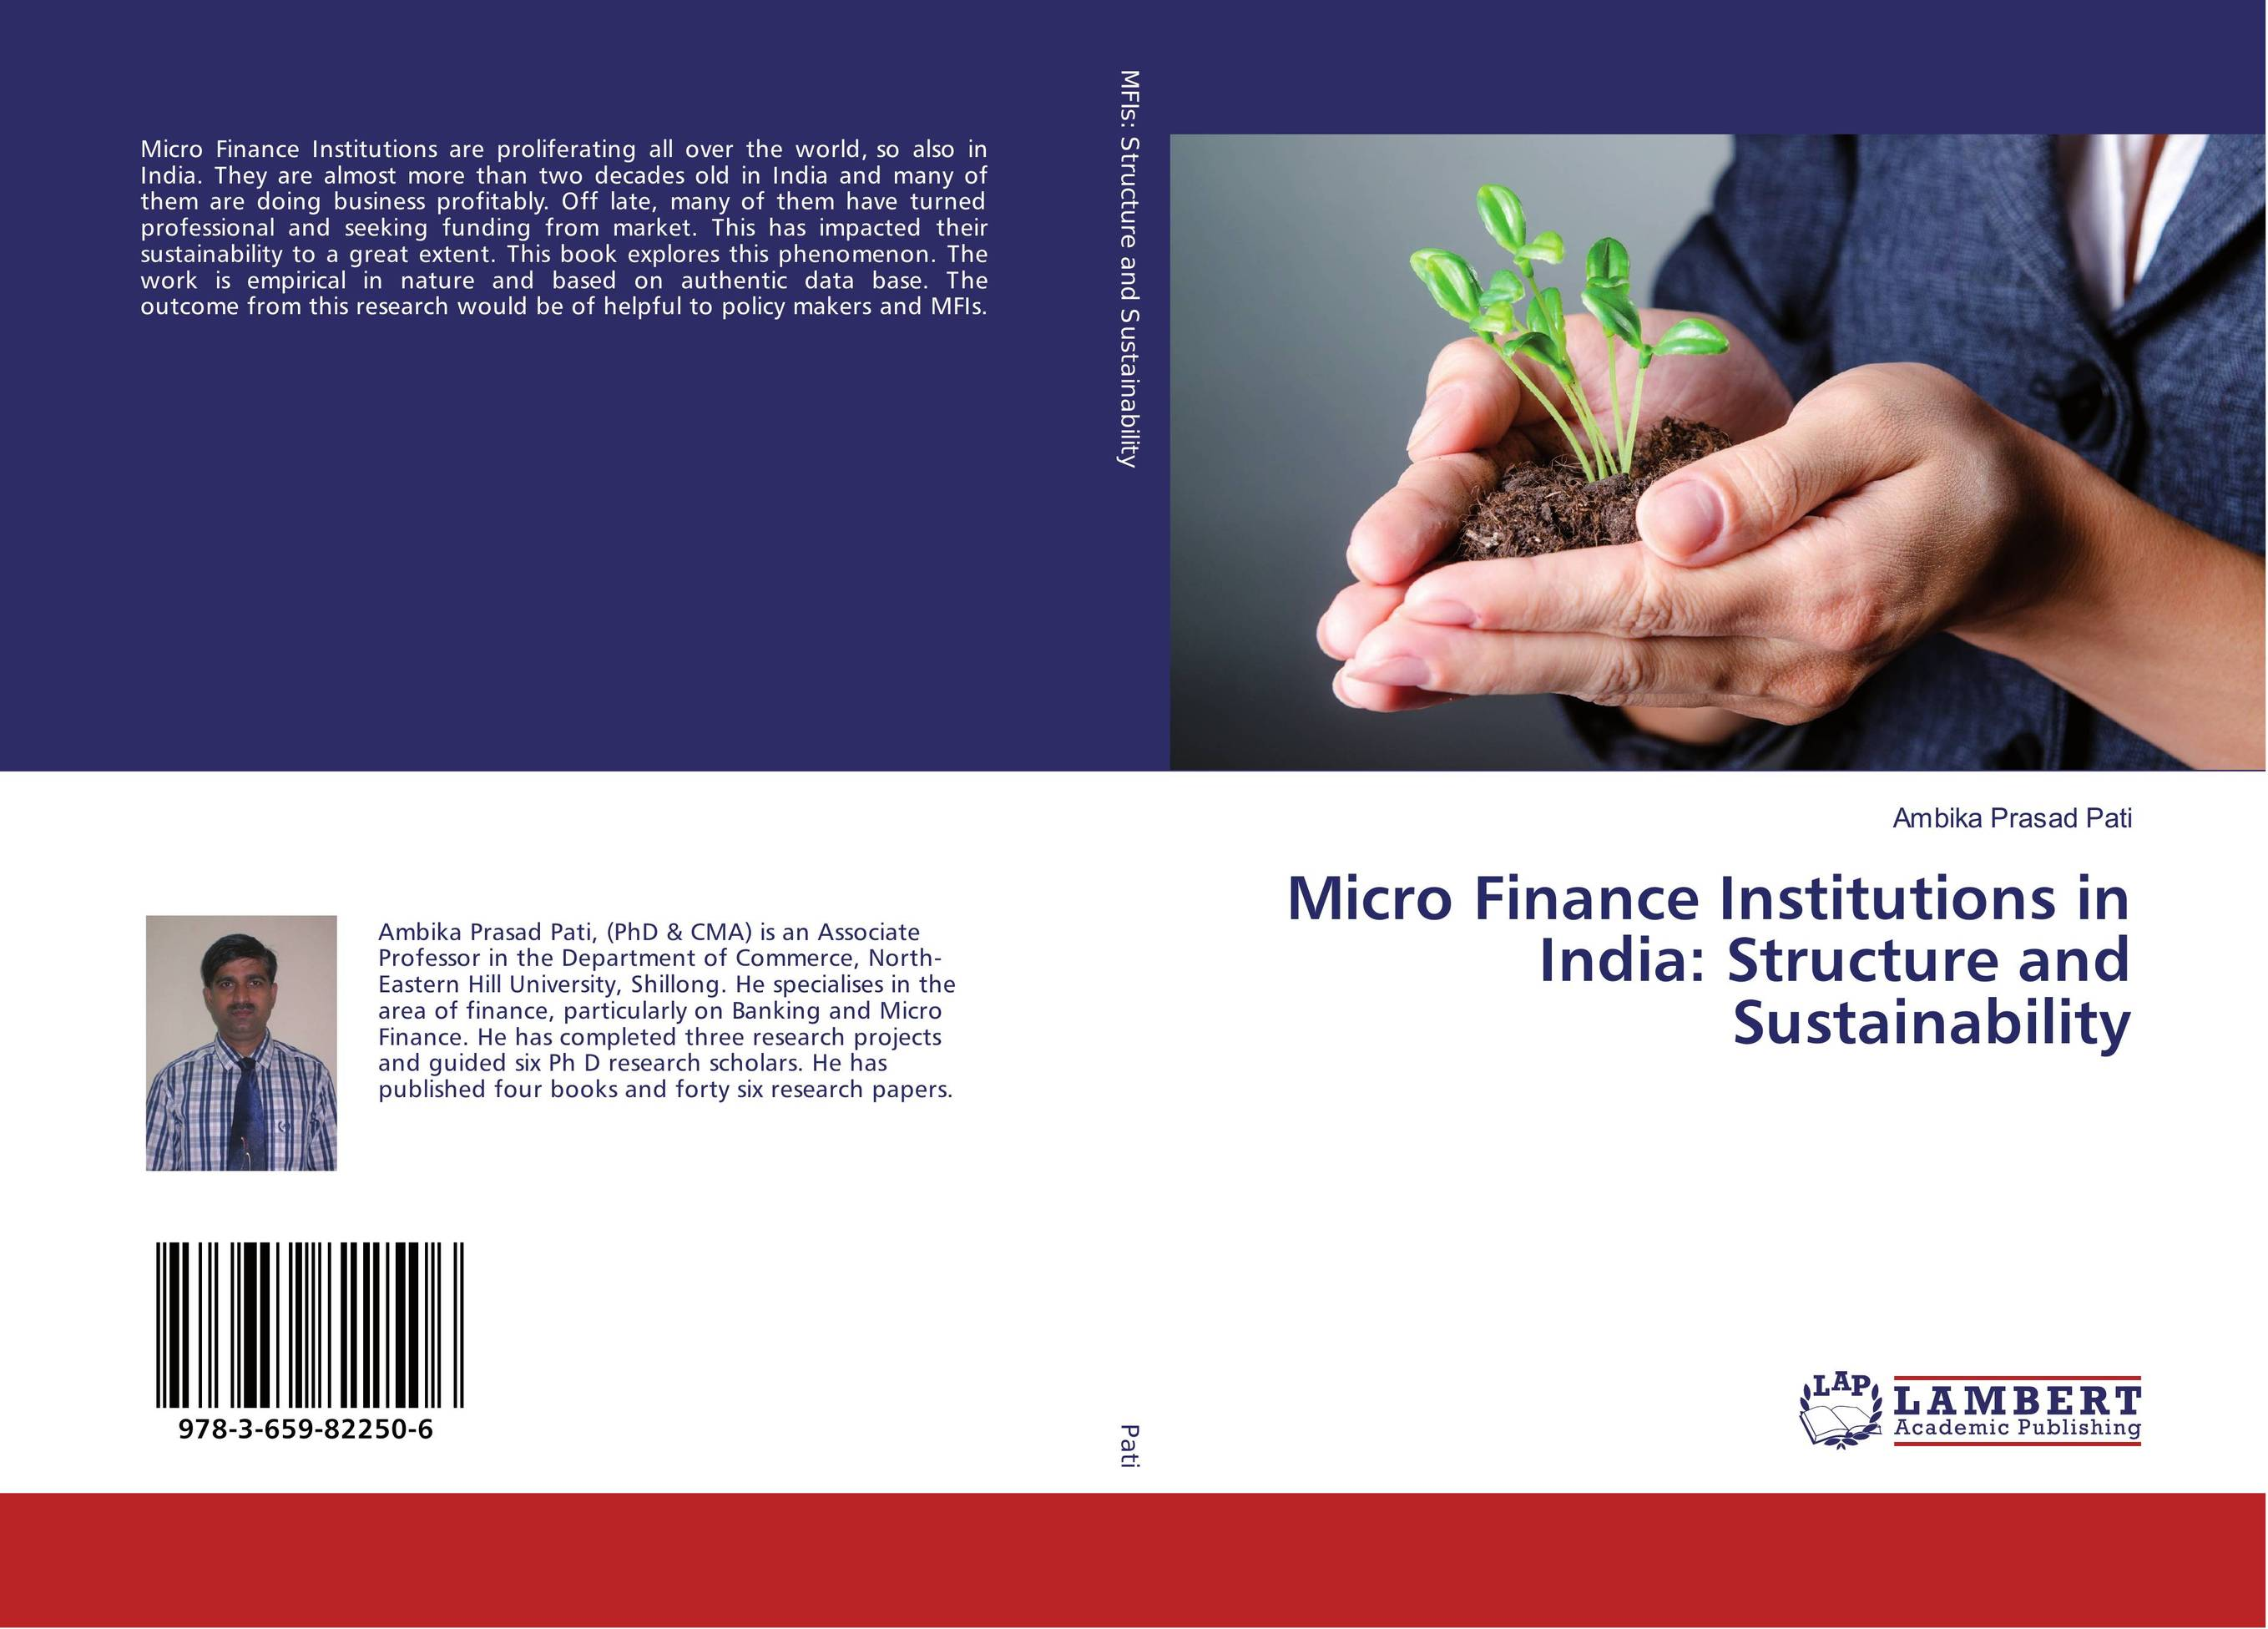 Micro Finance Institutions in India: Structure and Sustainability jaynal ud din ahmed and mohd abdul rashid institutional finance for micro and small entreprises in india